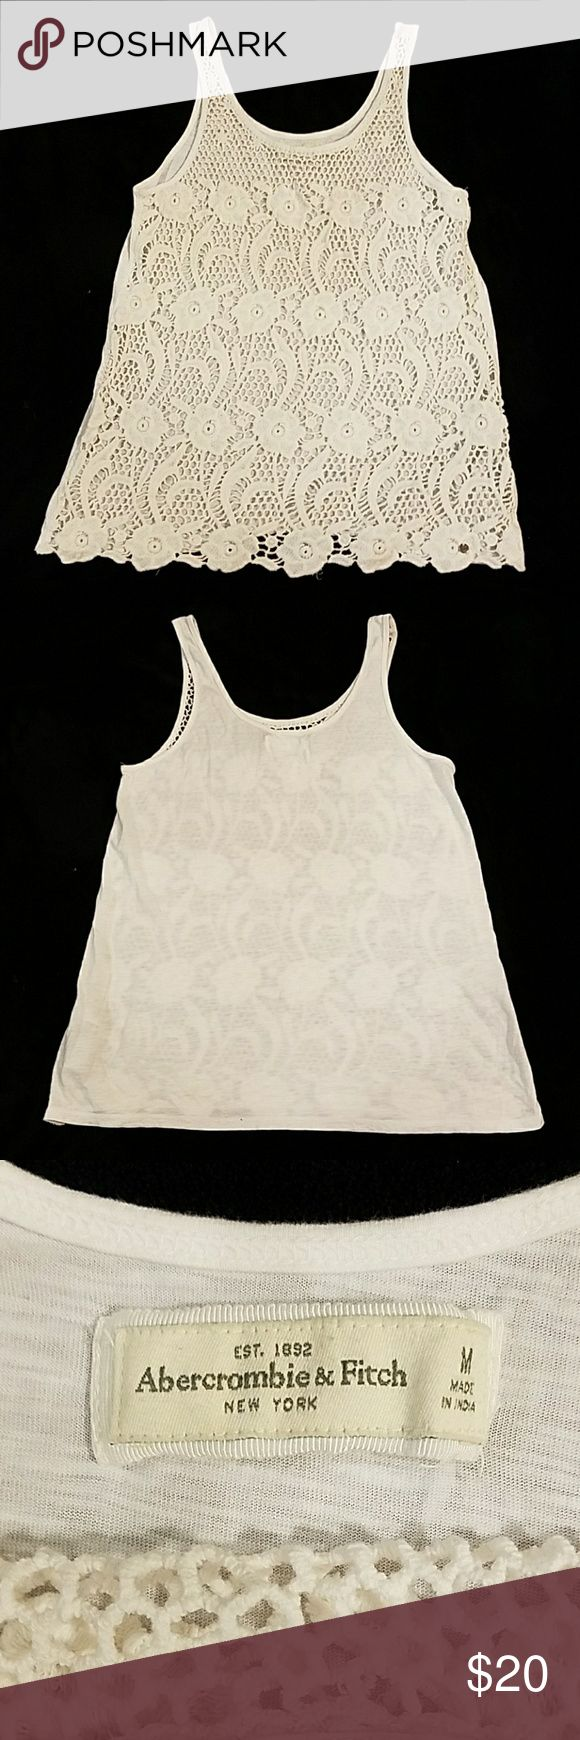 Abercrombie & Fitch crochet tank top EUC, no tears or stains, smoke-free home! Abercrombie & Fitch Tops Tank Tops